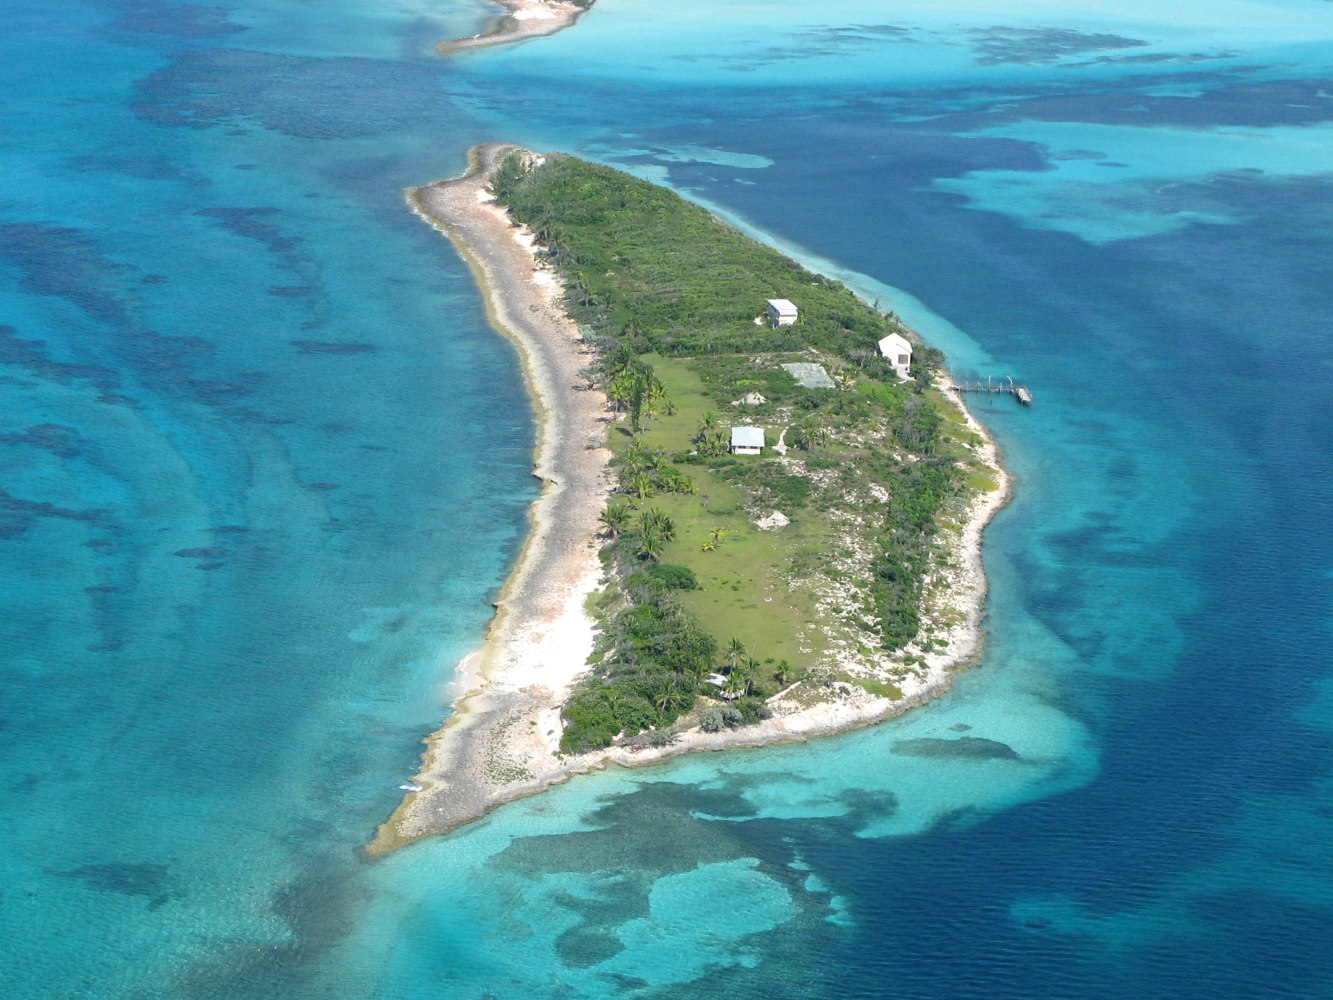 Private islands for sale pierre island bahamas caribbean for Bahamas private island for sale